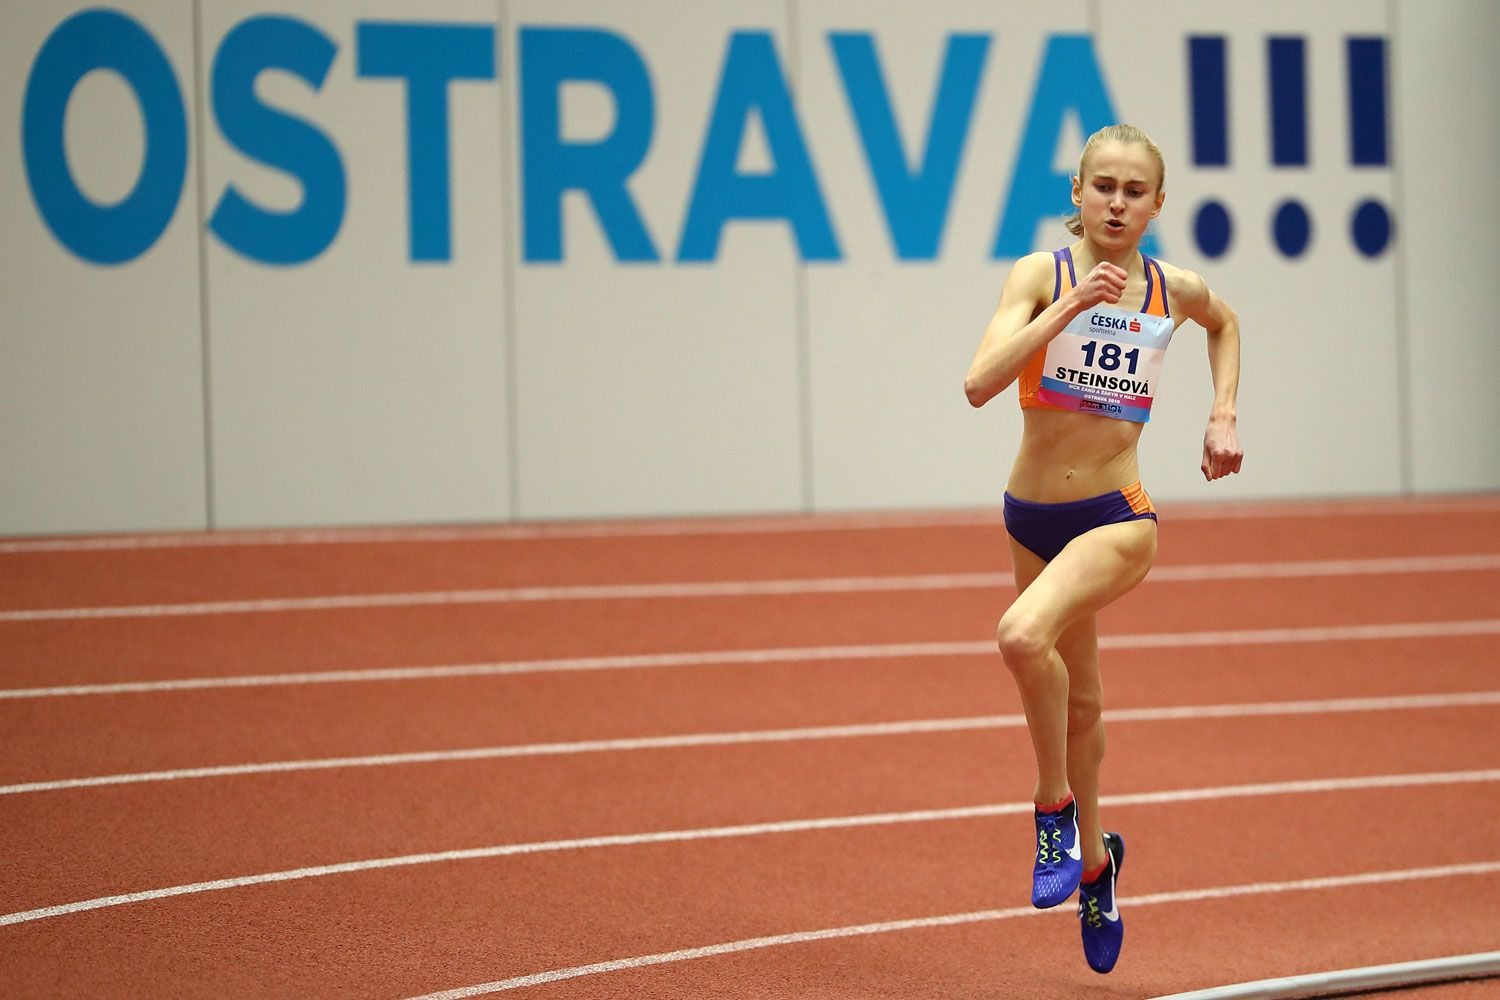 Ostrava Indoor CZ Championship U16 Saturday 25